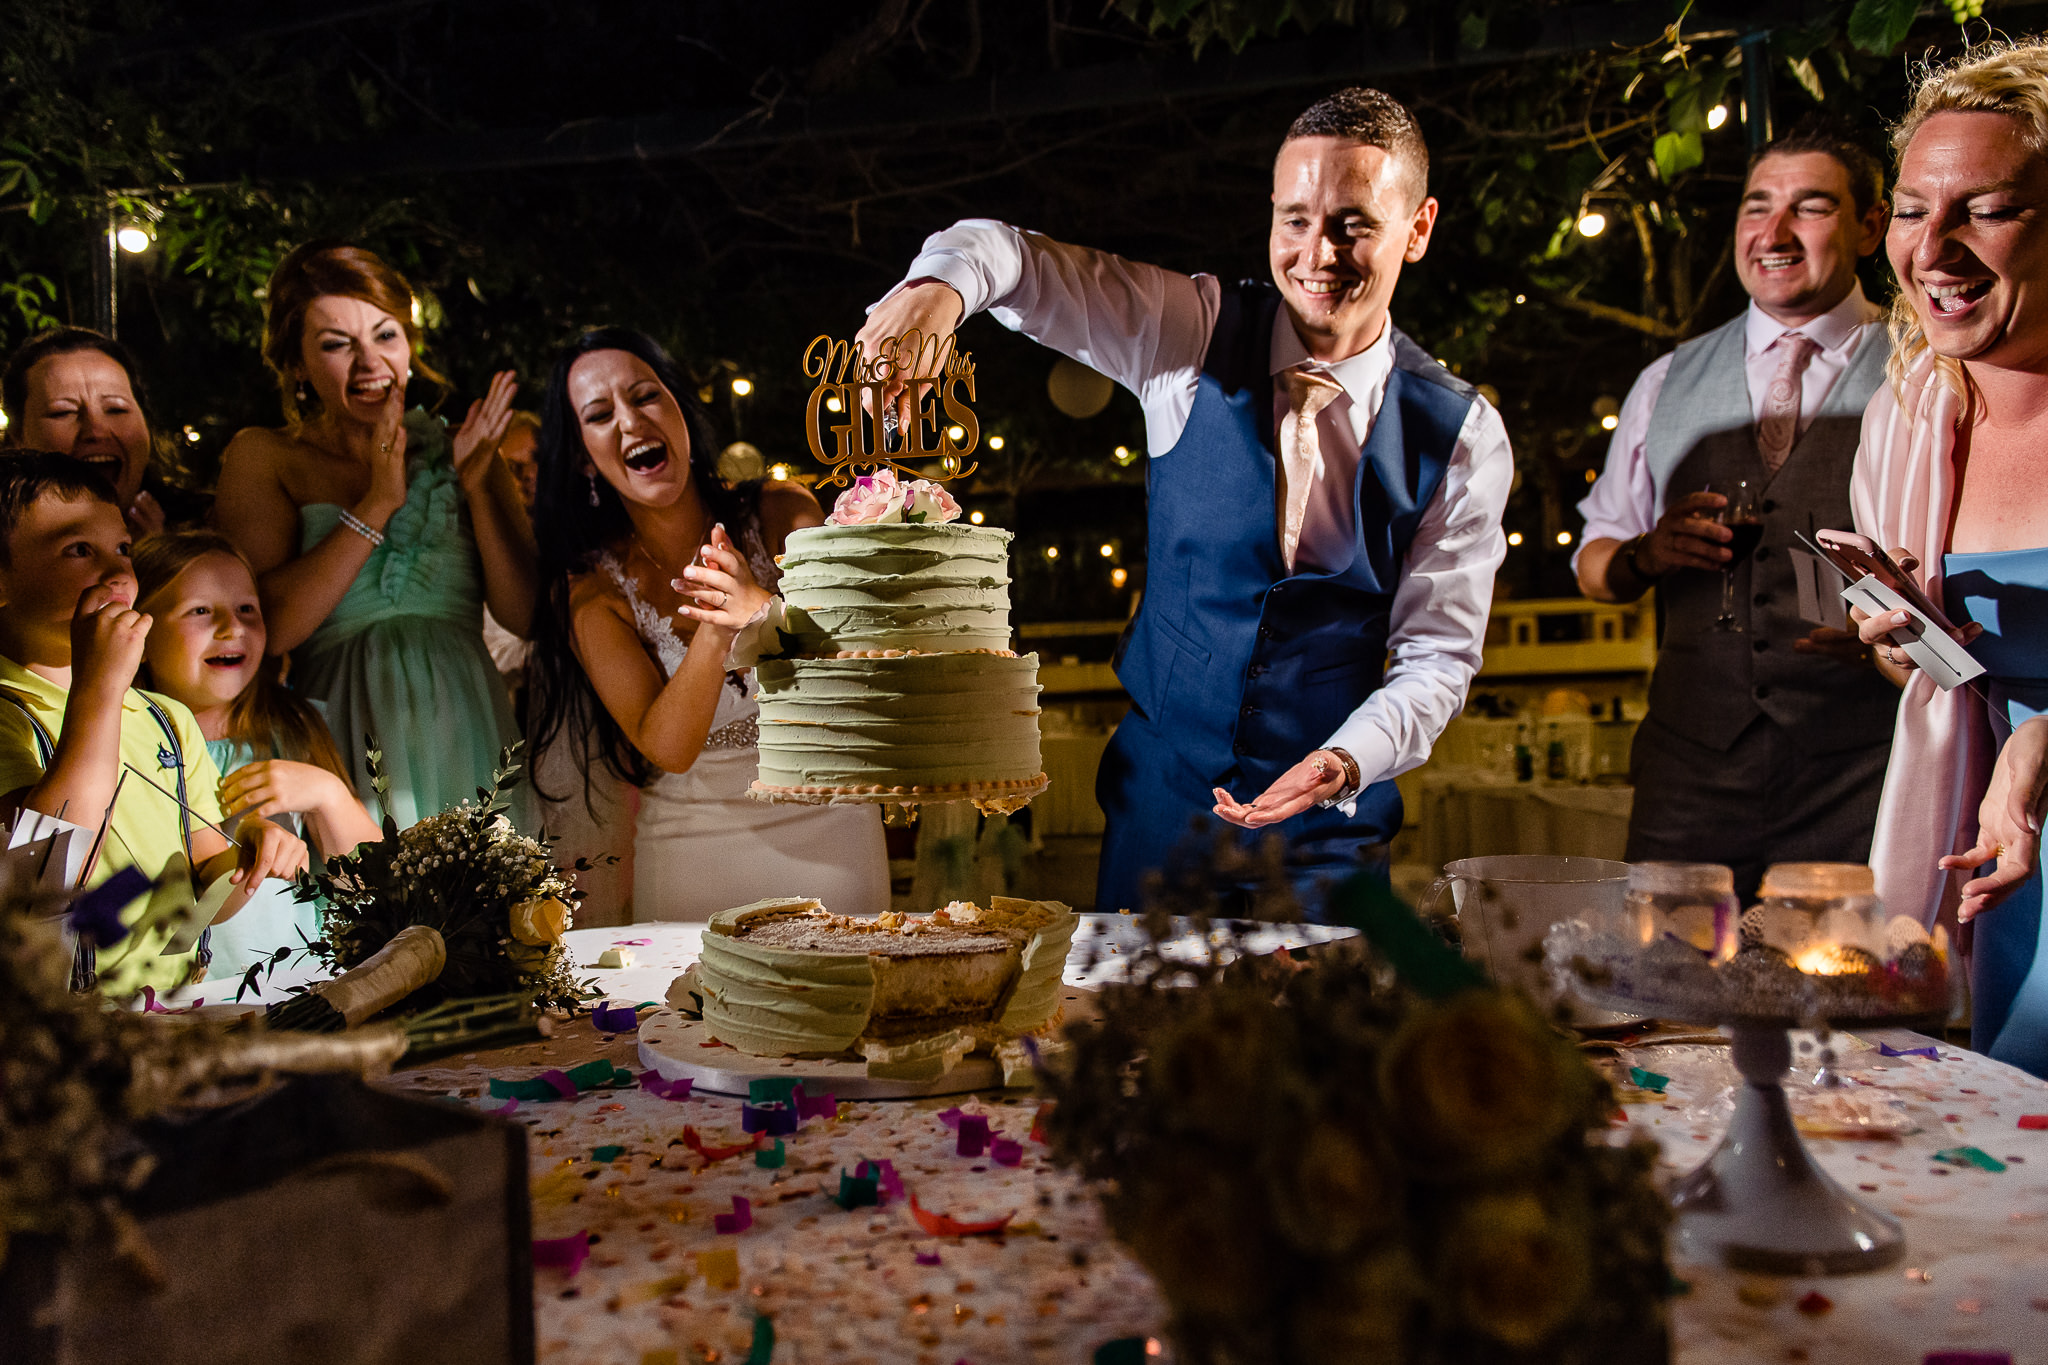 Groom with Mr and Mrs ornament on cake - photo by Shane .P Watts Photography